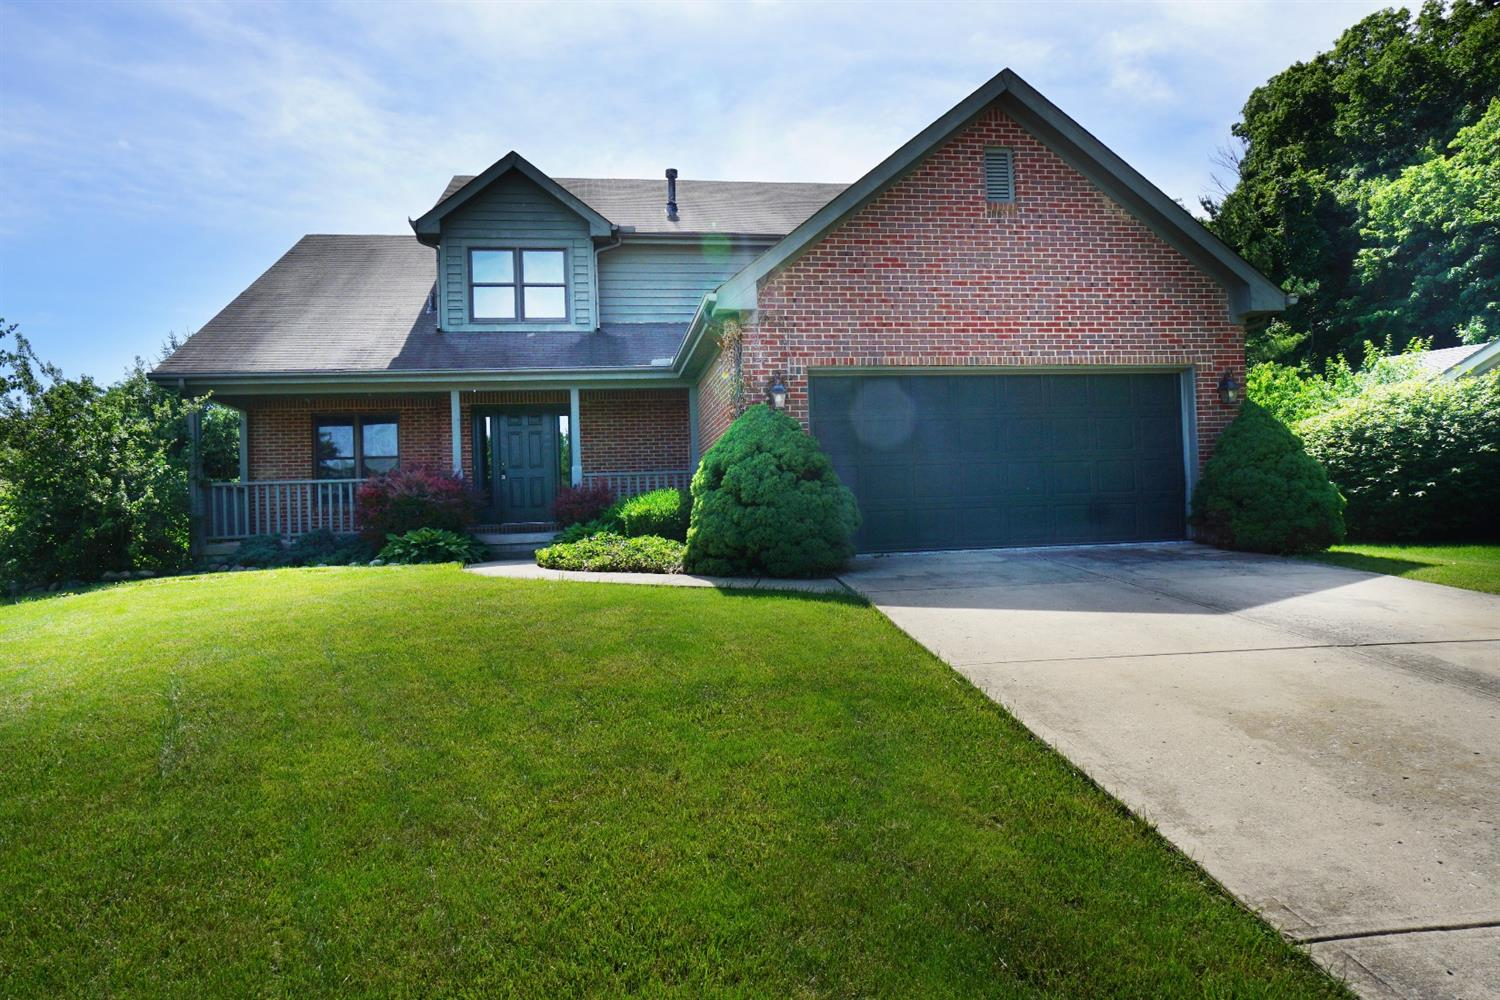 543 Brentwood Ct